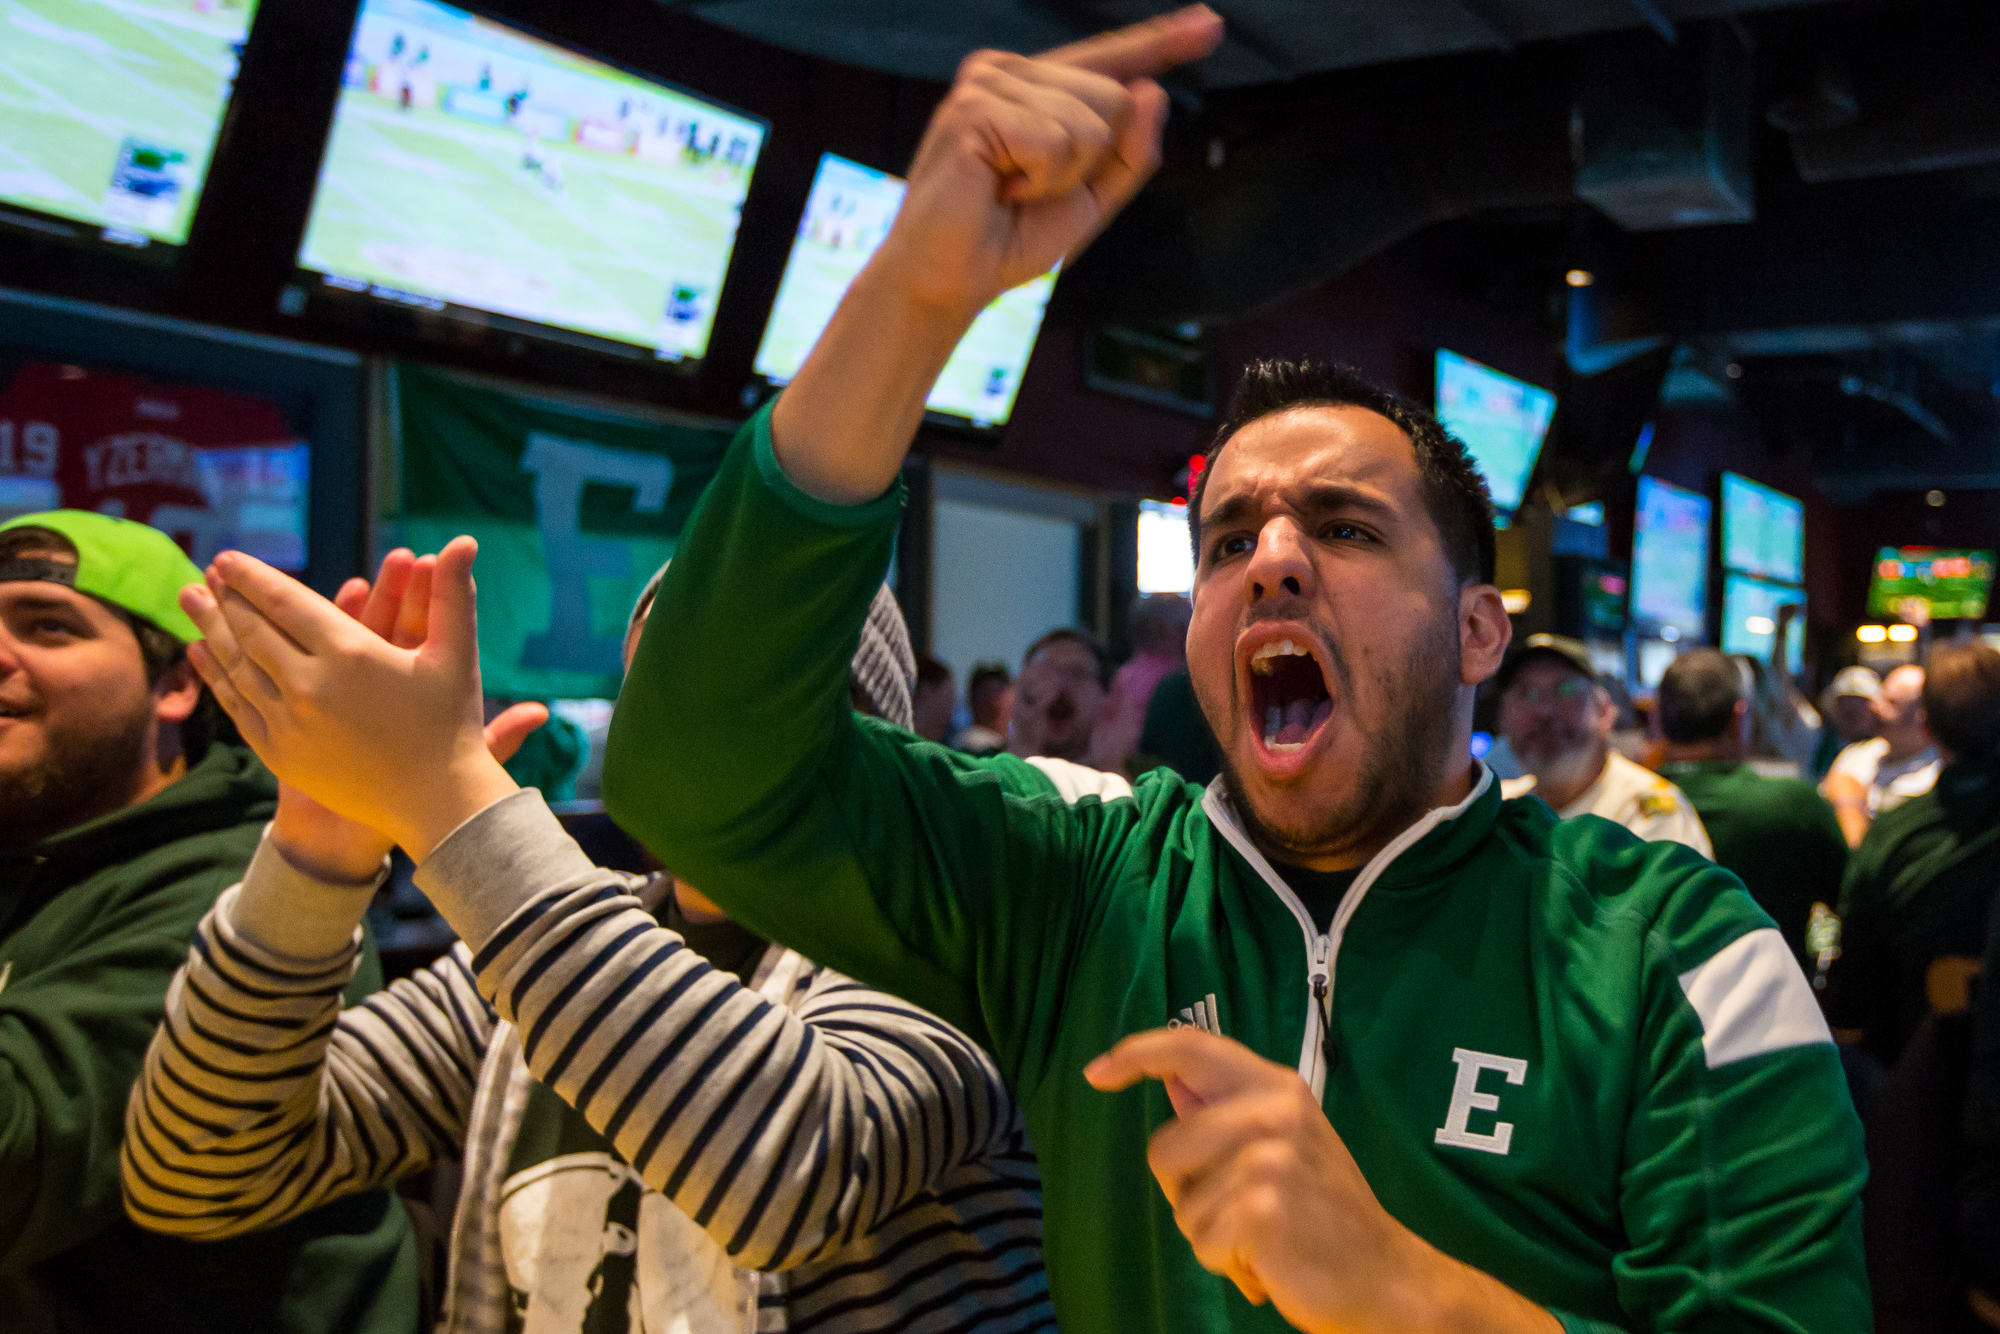 Frank Anderson screams as Eastern Michigan University plays Old Dominion during the Bahamas Bowl from Buffalo Wild Wings in Ypsilanti on Friday, December 23, 2016. EMU has not been to a bowl game since 1987 when they played in the California Bowl. Matt Weigand | The Ann Arbor News